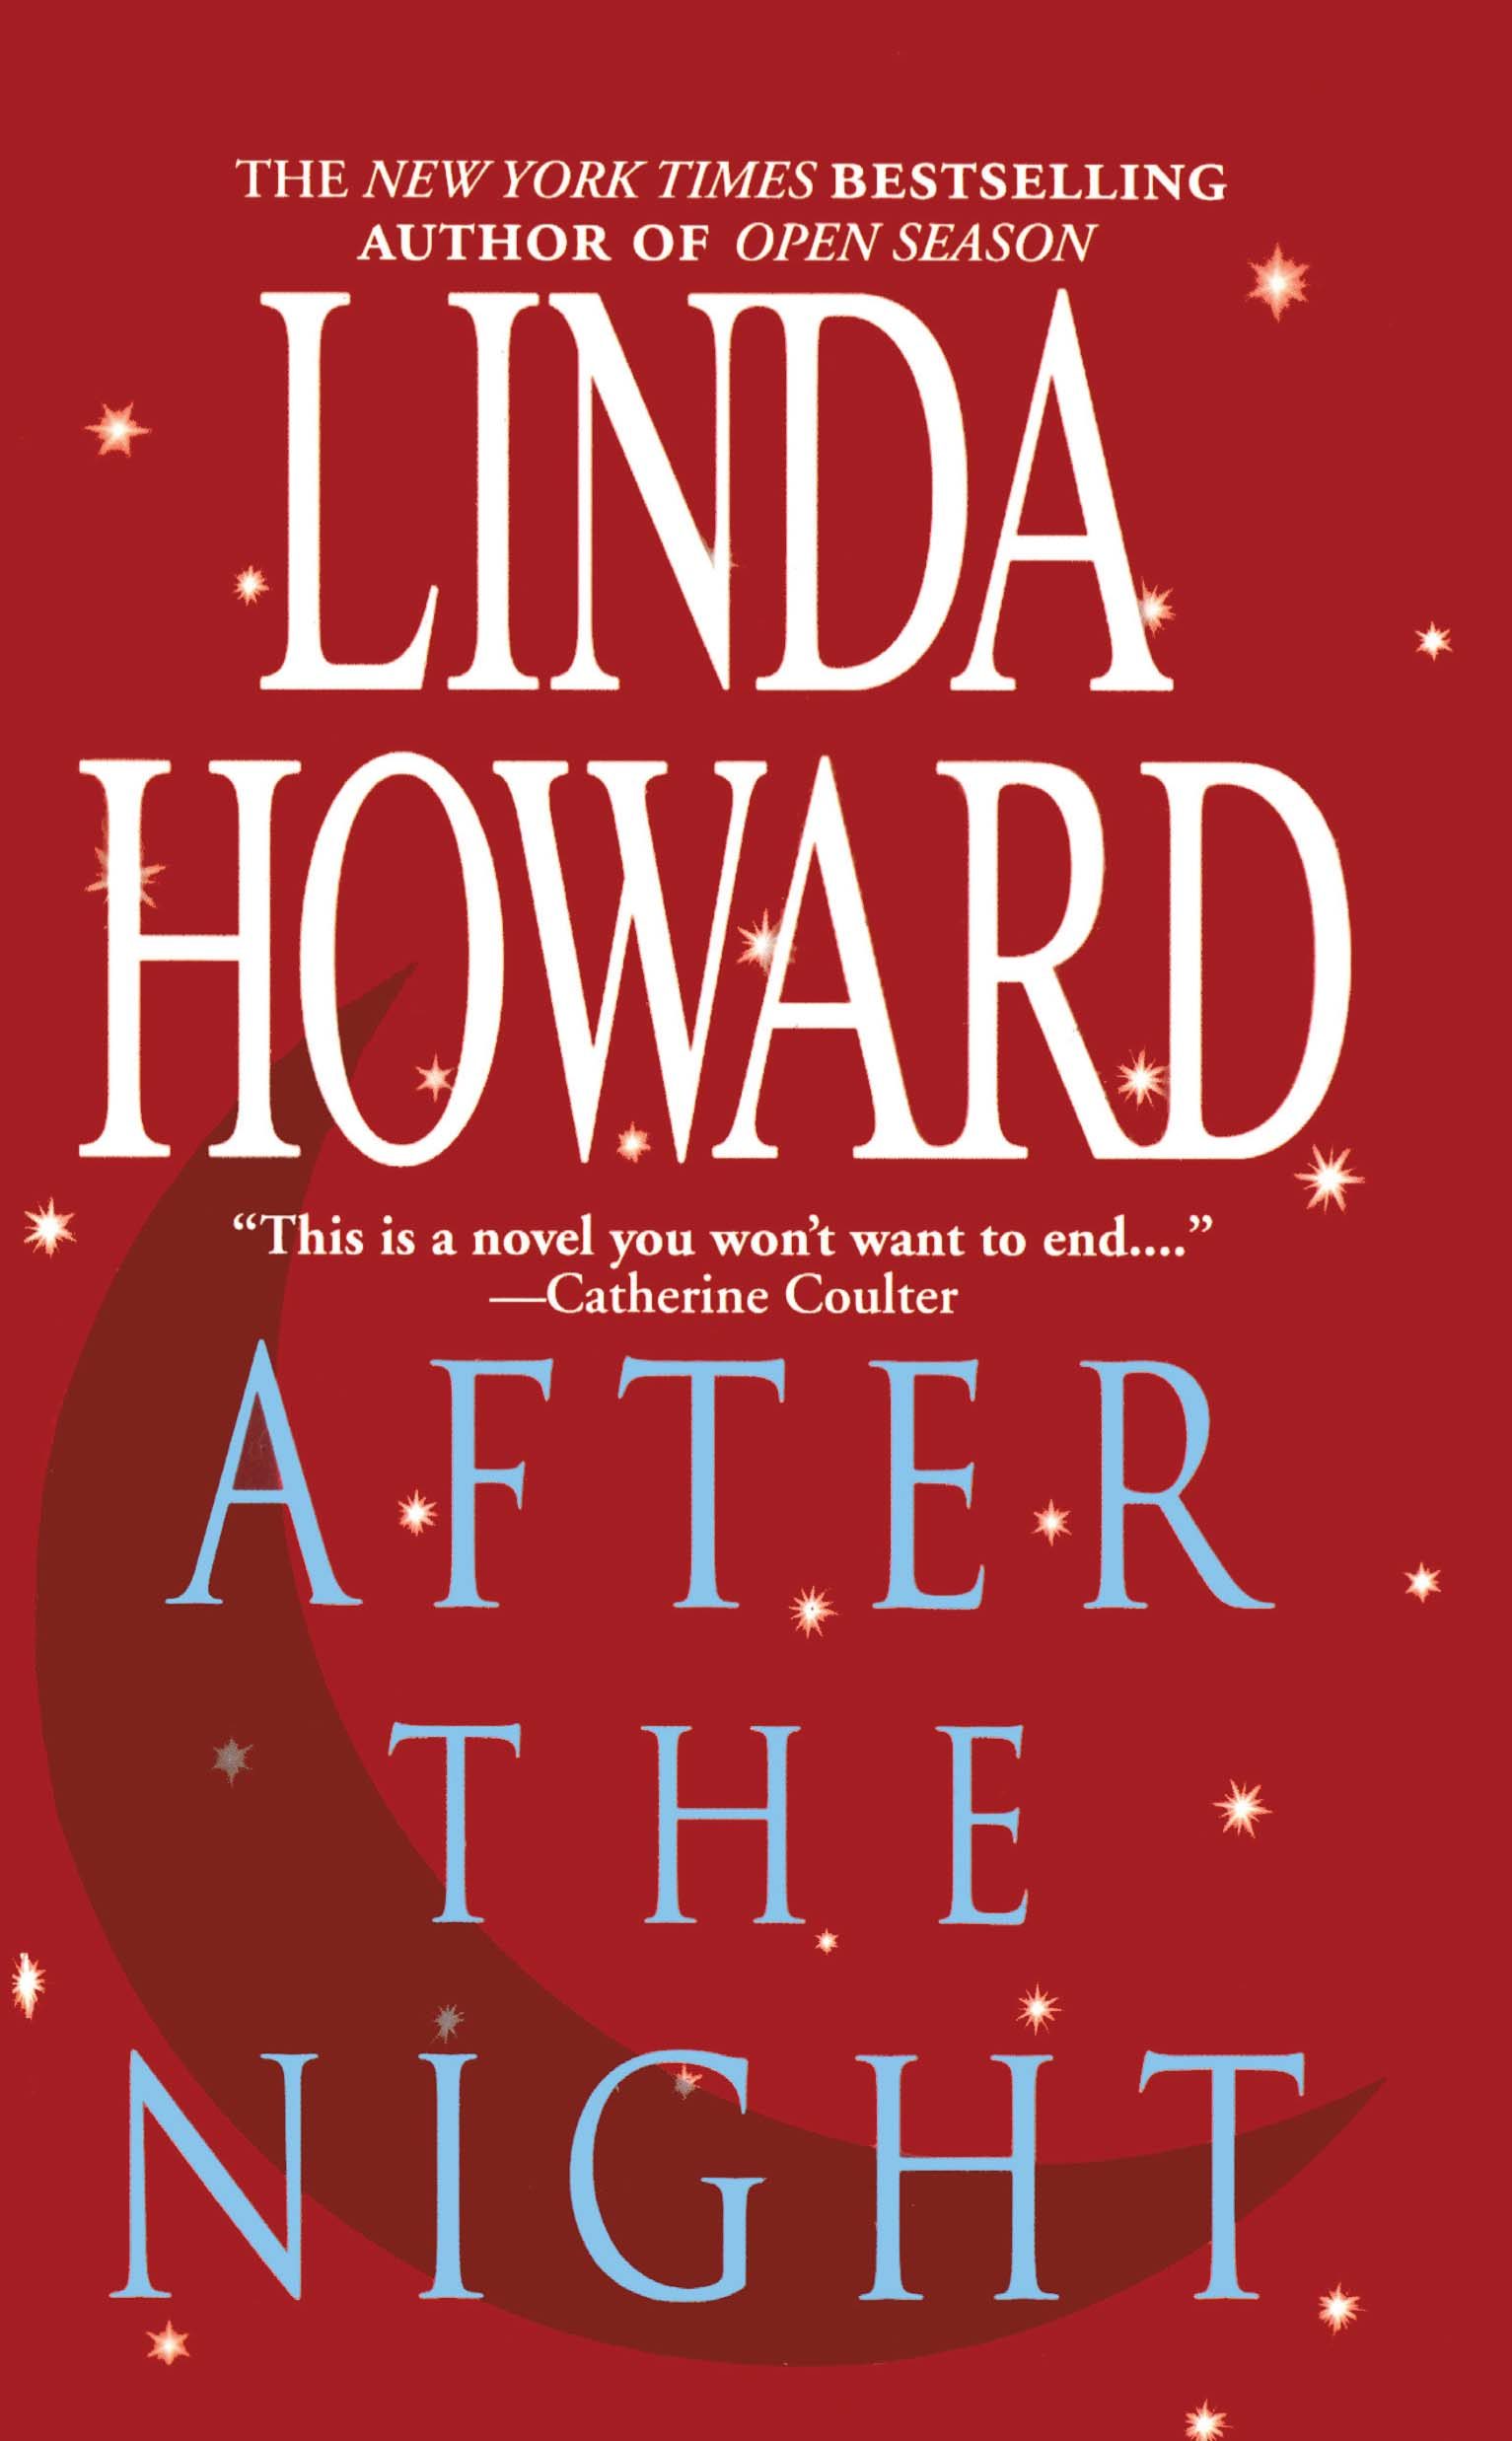 After The Night | Book by Linda Howard | Official Publisher Page ...